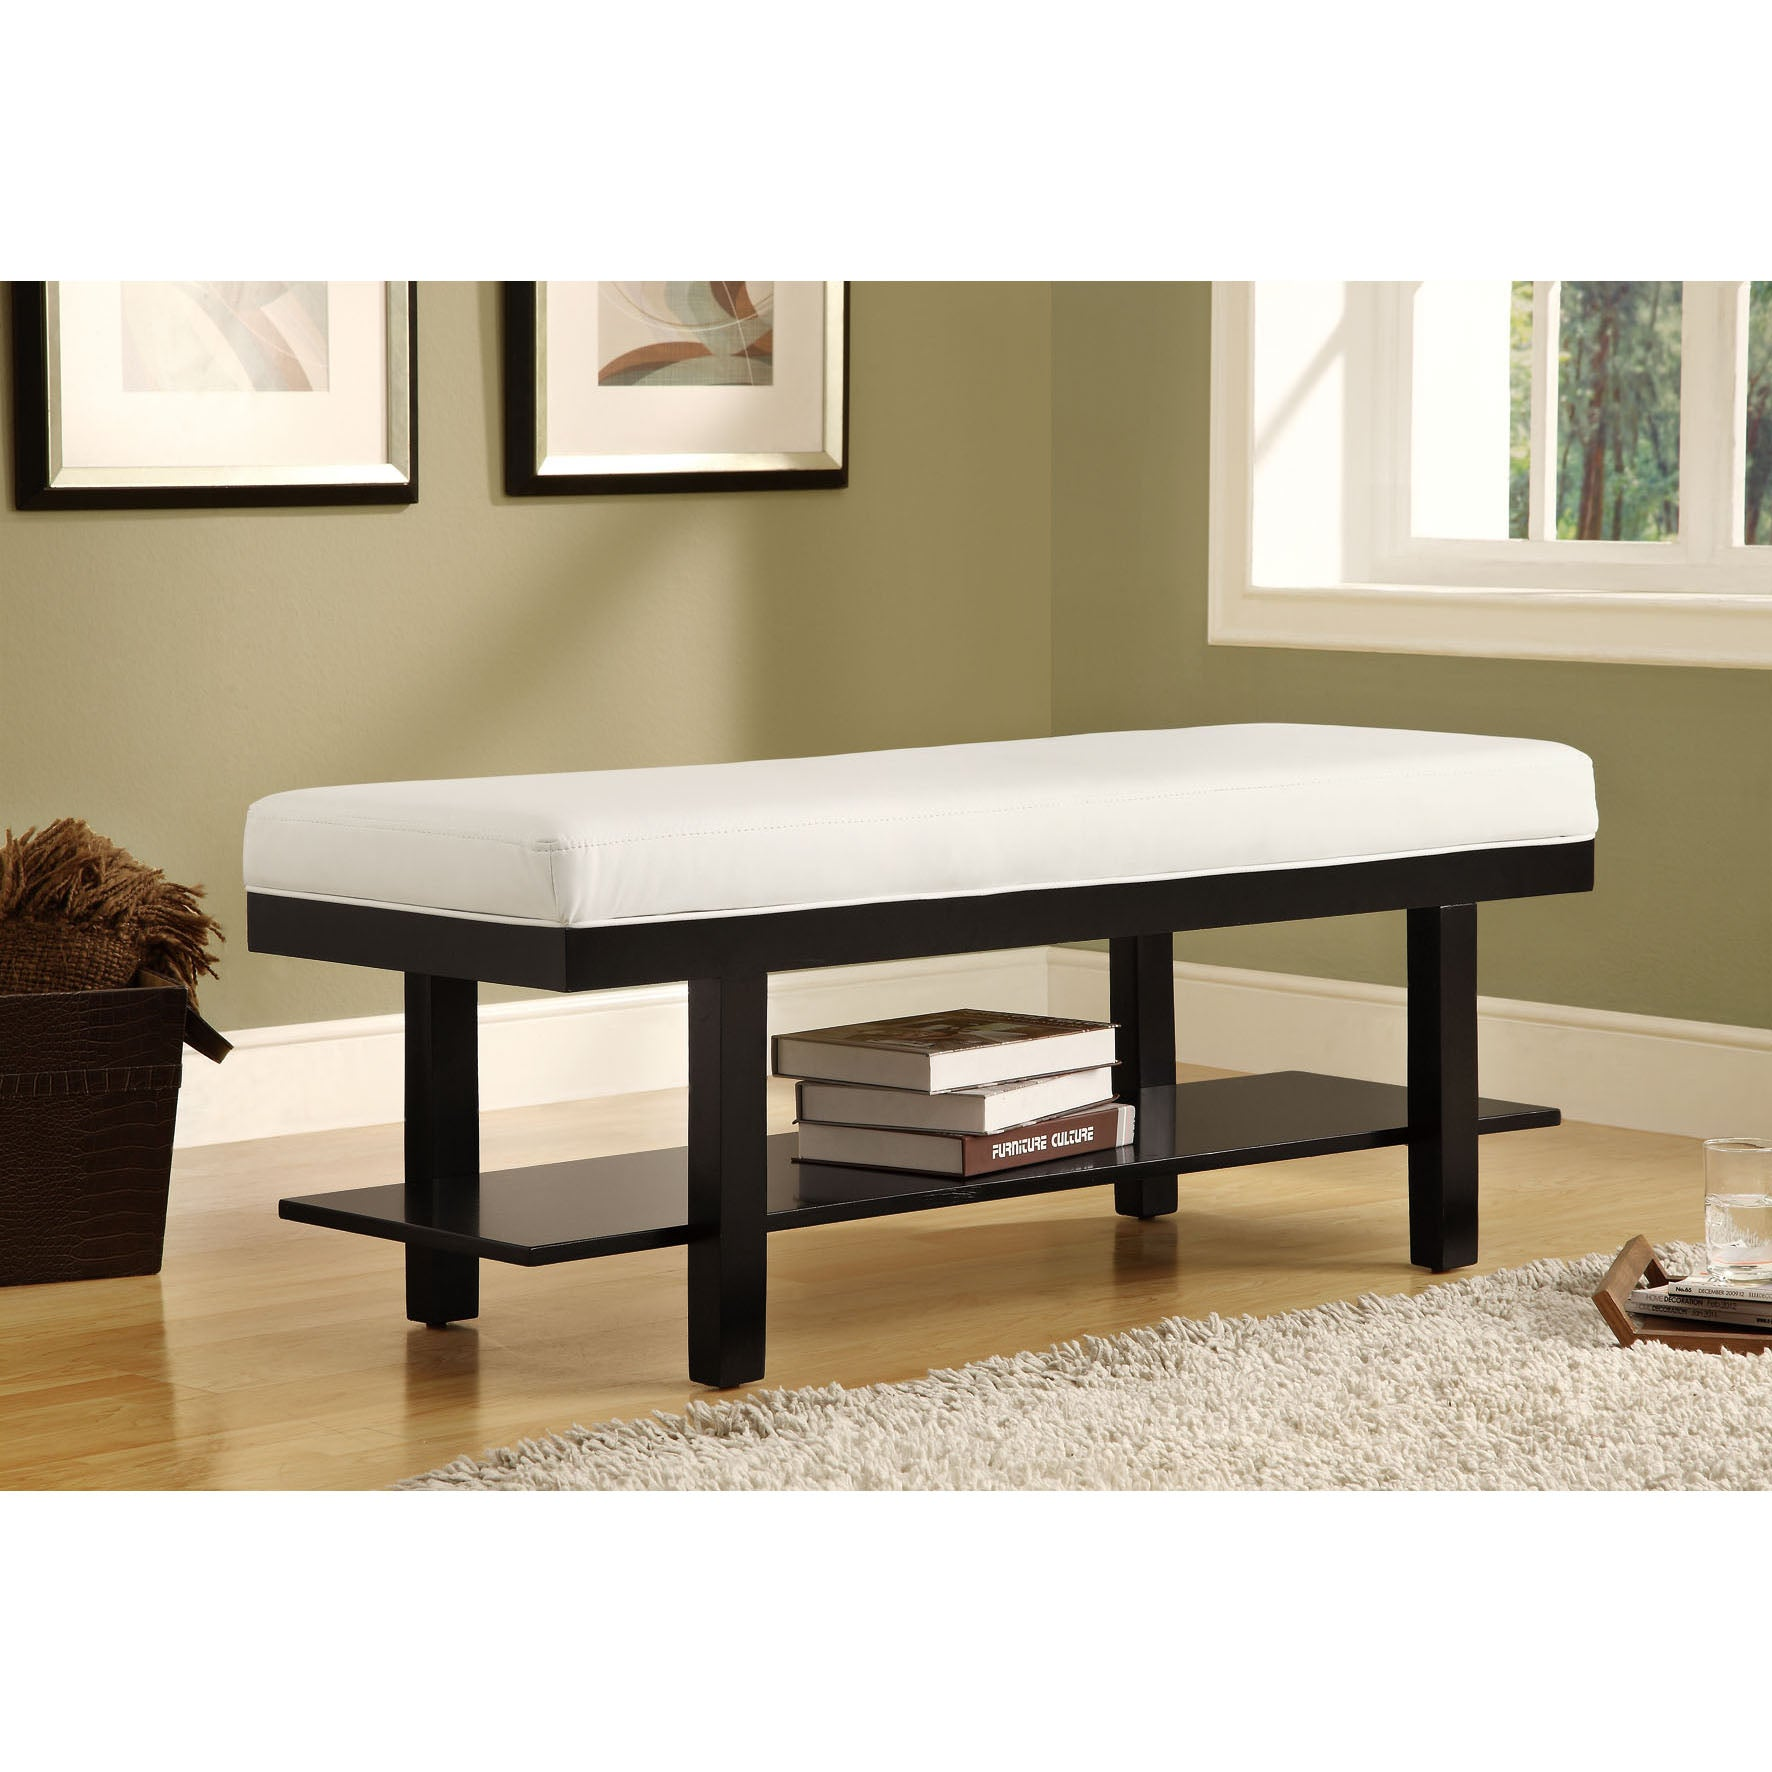 Black Solid Wood / White Leather-Look Bench